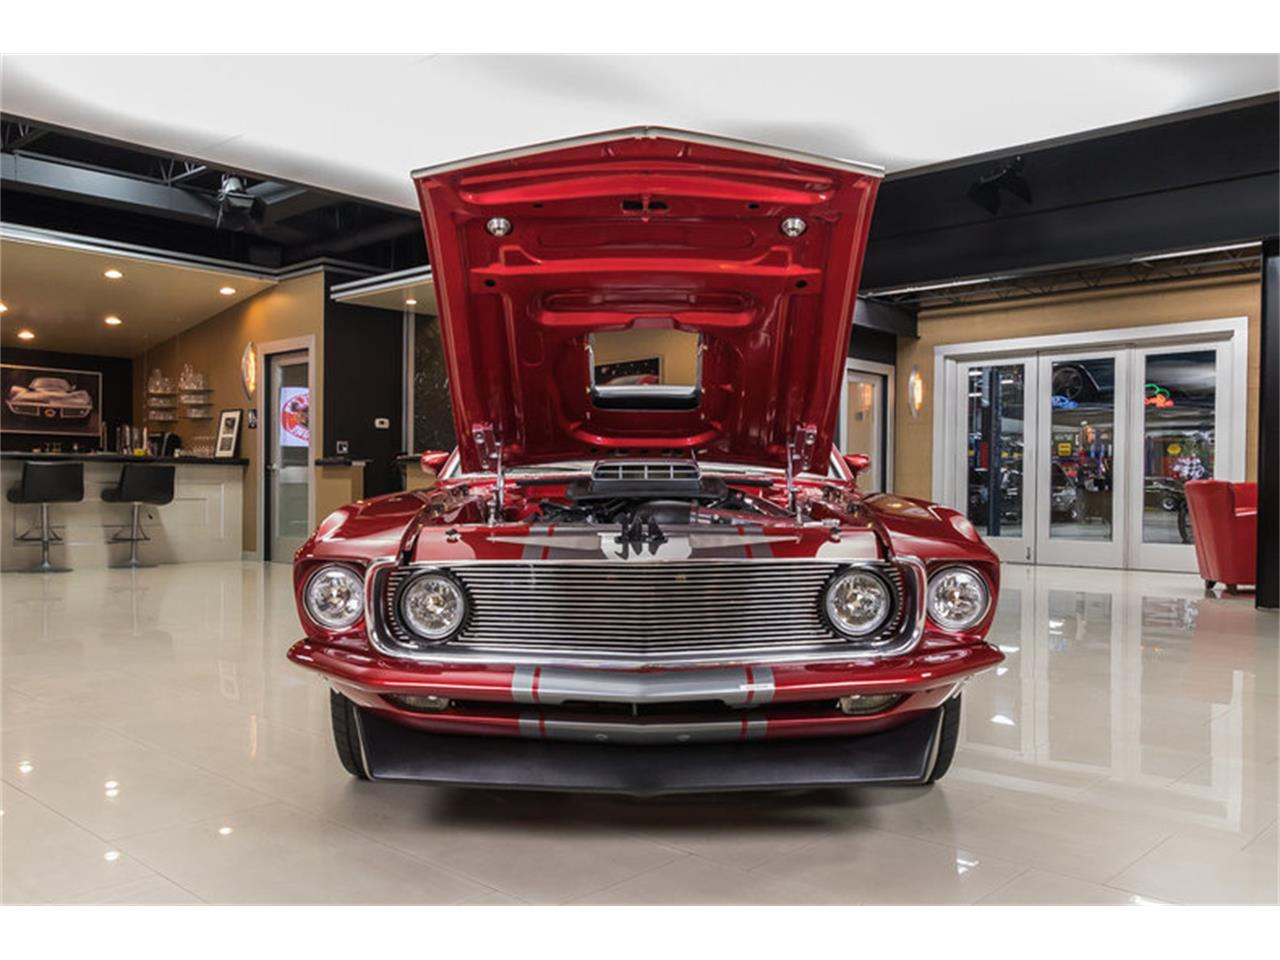 Large Picture of 1969 Mustang Fastback Restomod located in Plymouth Michigan - $194,900.00 Offered by Vanguard Motor Sales - L6C8